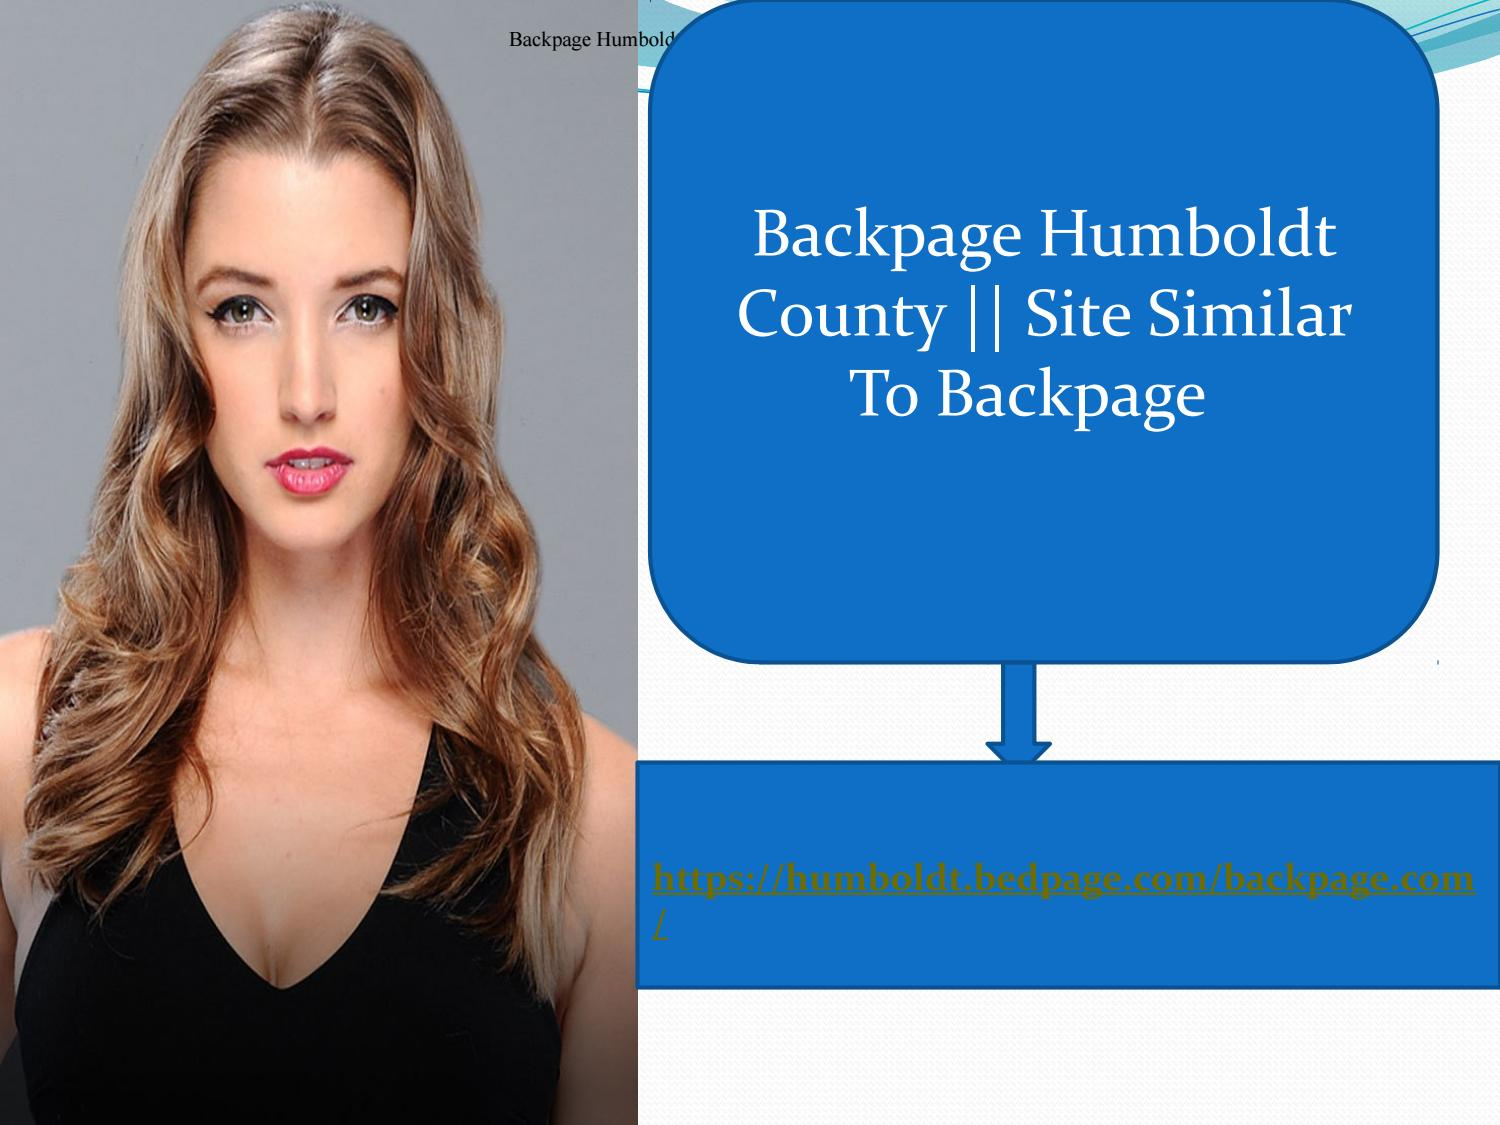 Backpage Humboldt County || Site Similar To Backpage by